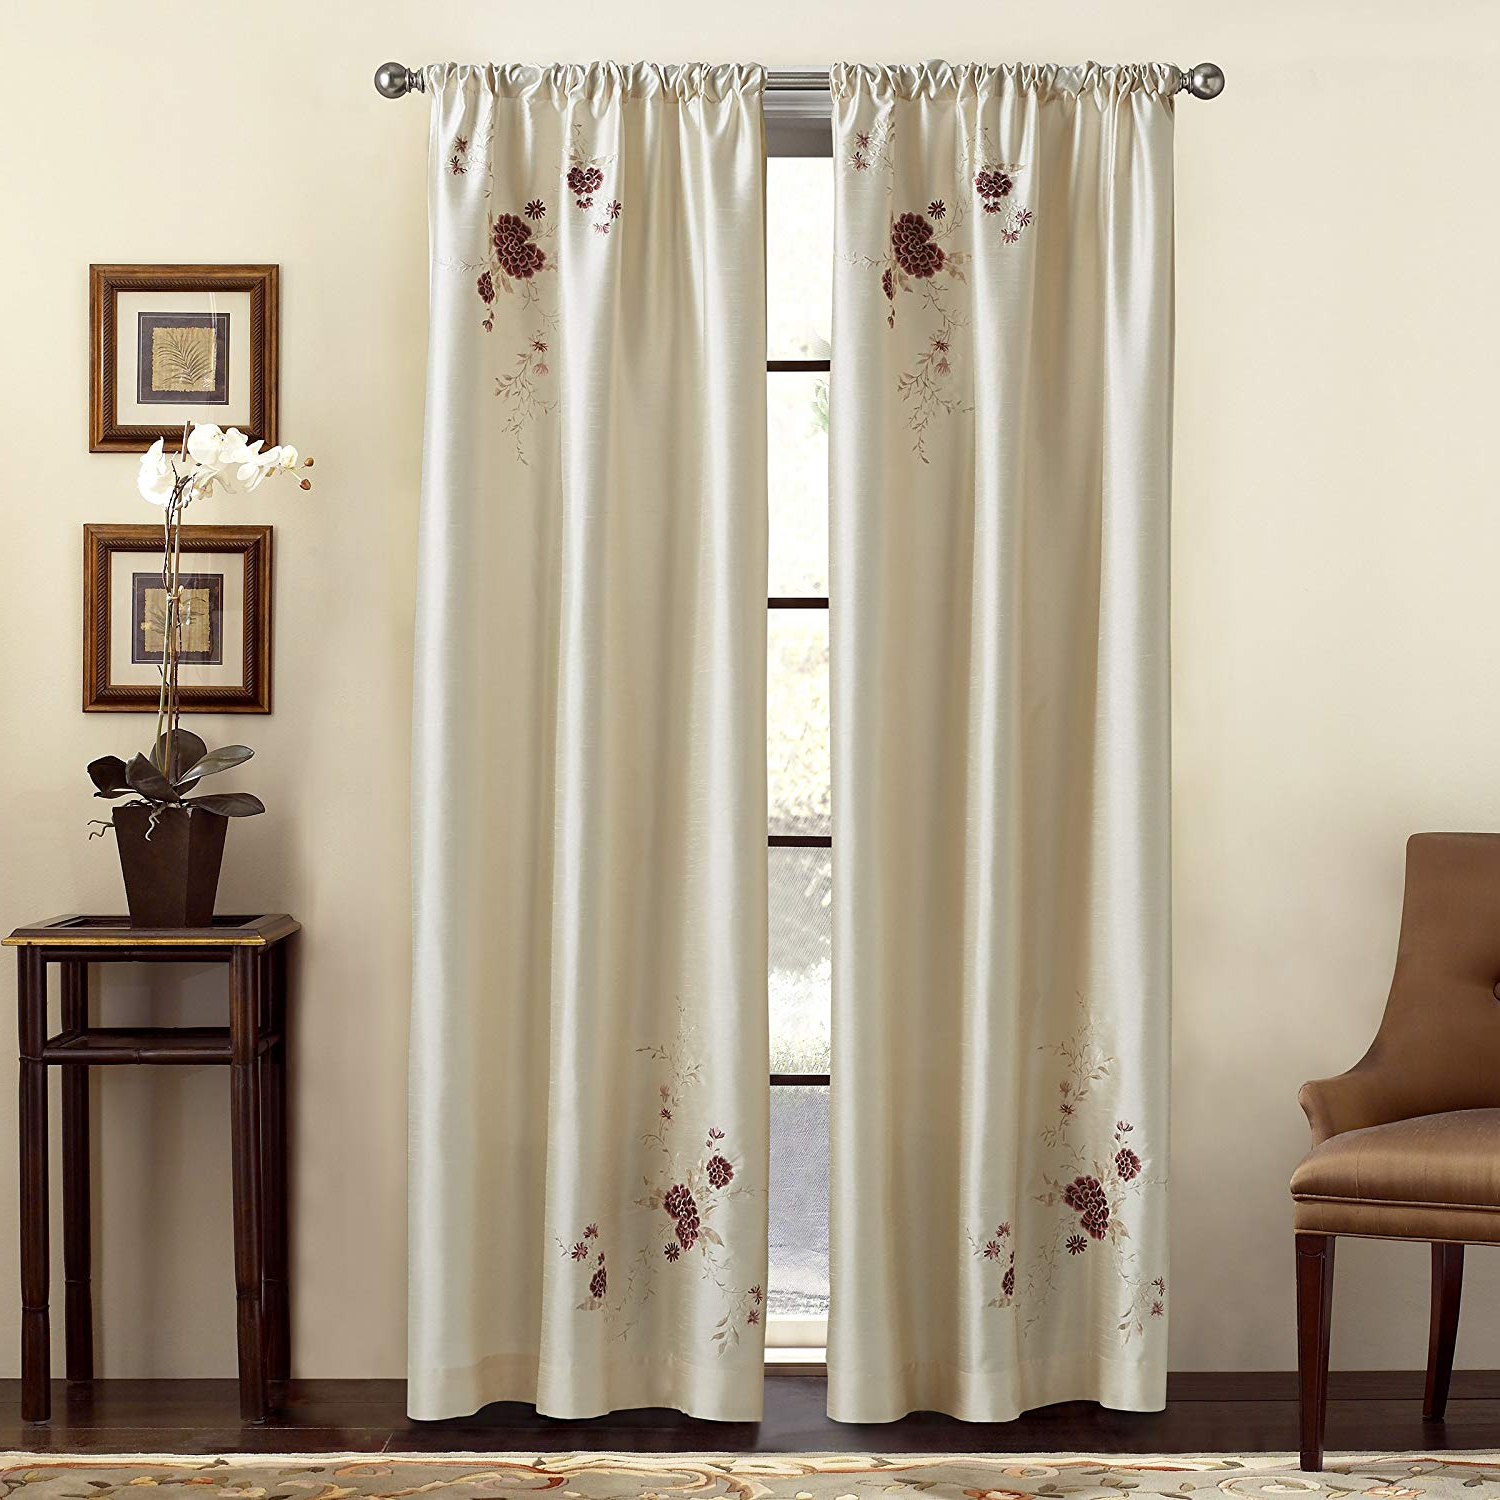 Most Recently Released Chf & You Alesandra Floral Embroidered Faux Silk Window Curtain Panel, Ivory, 44 Inch X 63 Inch With Regard To Ofloral Embroidered Faux Silk Window Curtain Panels (View 3 of 20)